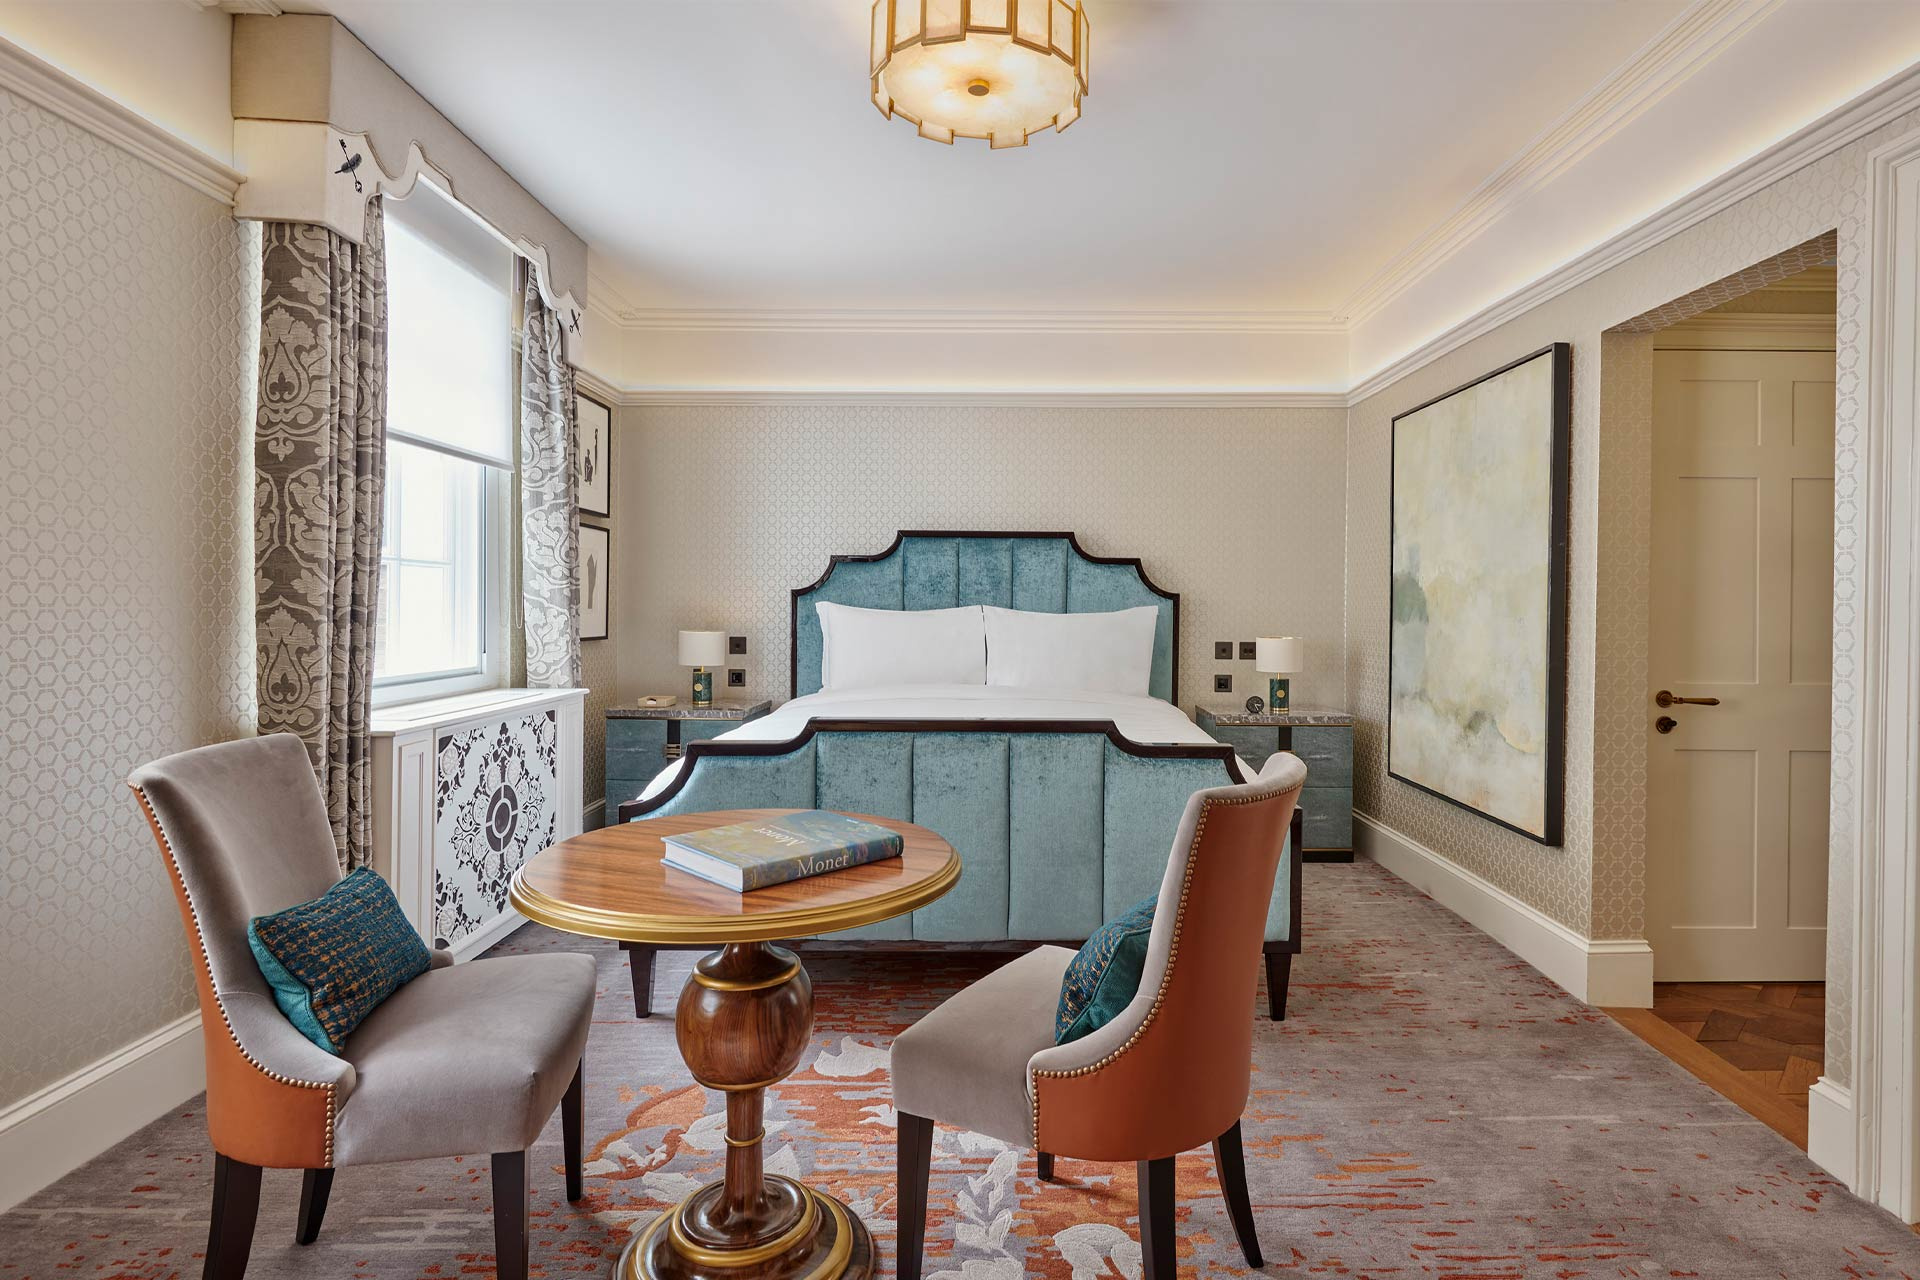 A bedroom at Great Scotland Yard Hotel's No.1 The Townhouse in London